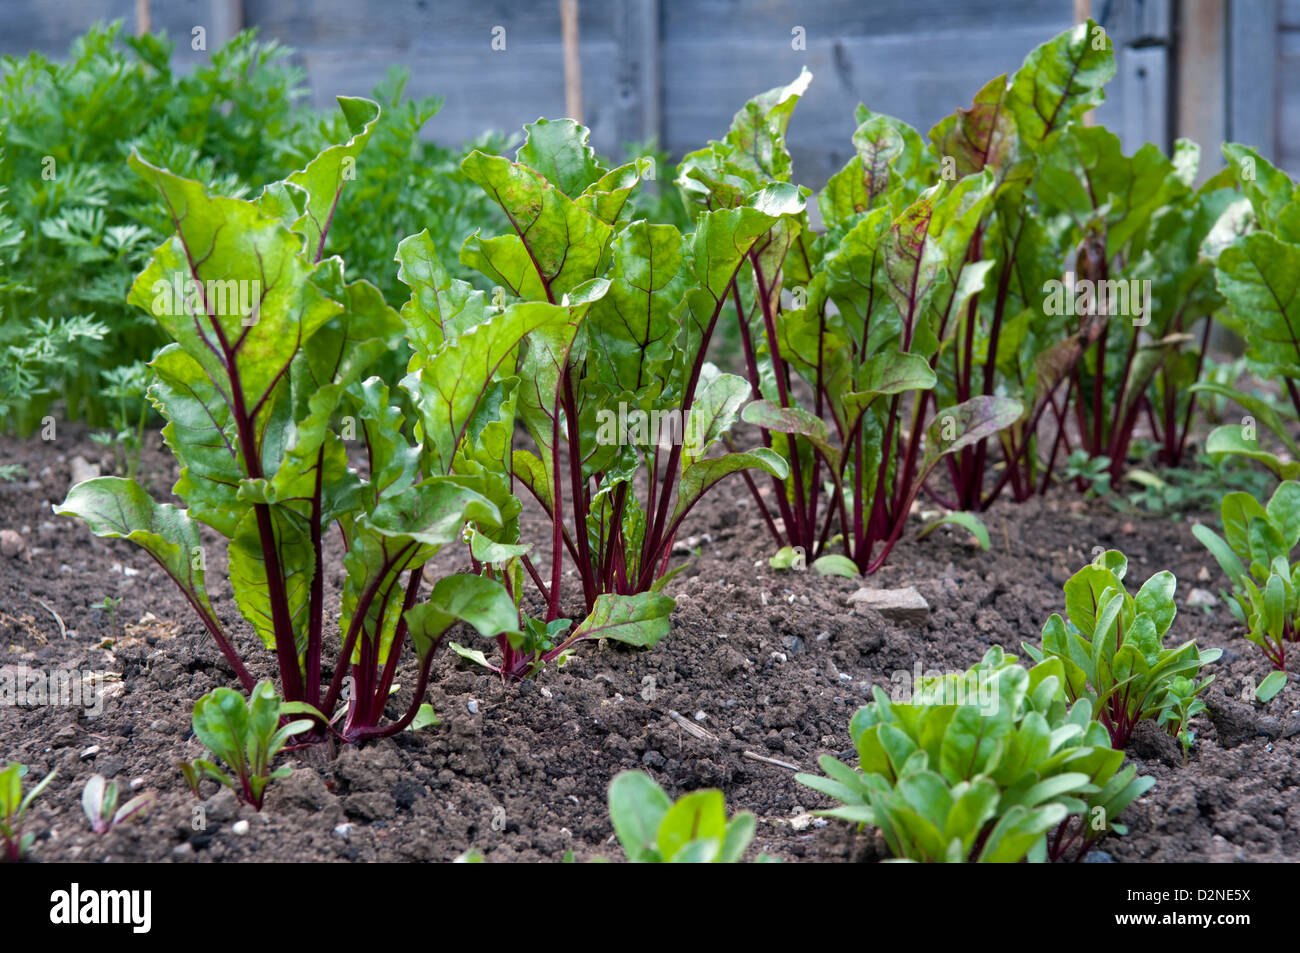 Beetroot plants, variety Boltardy, growing in garden Stock ...